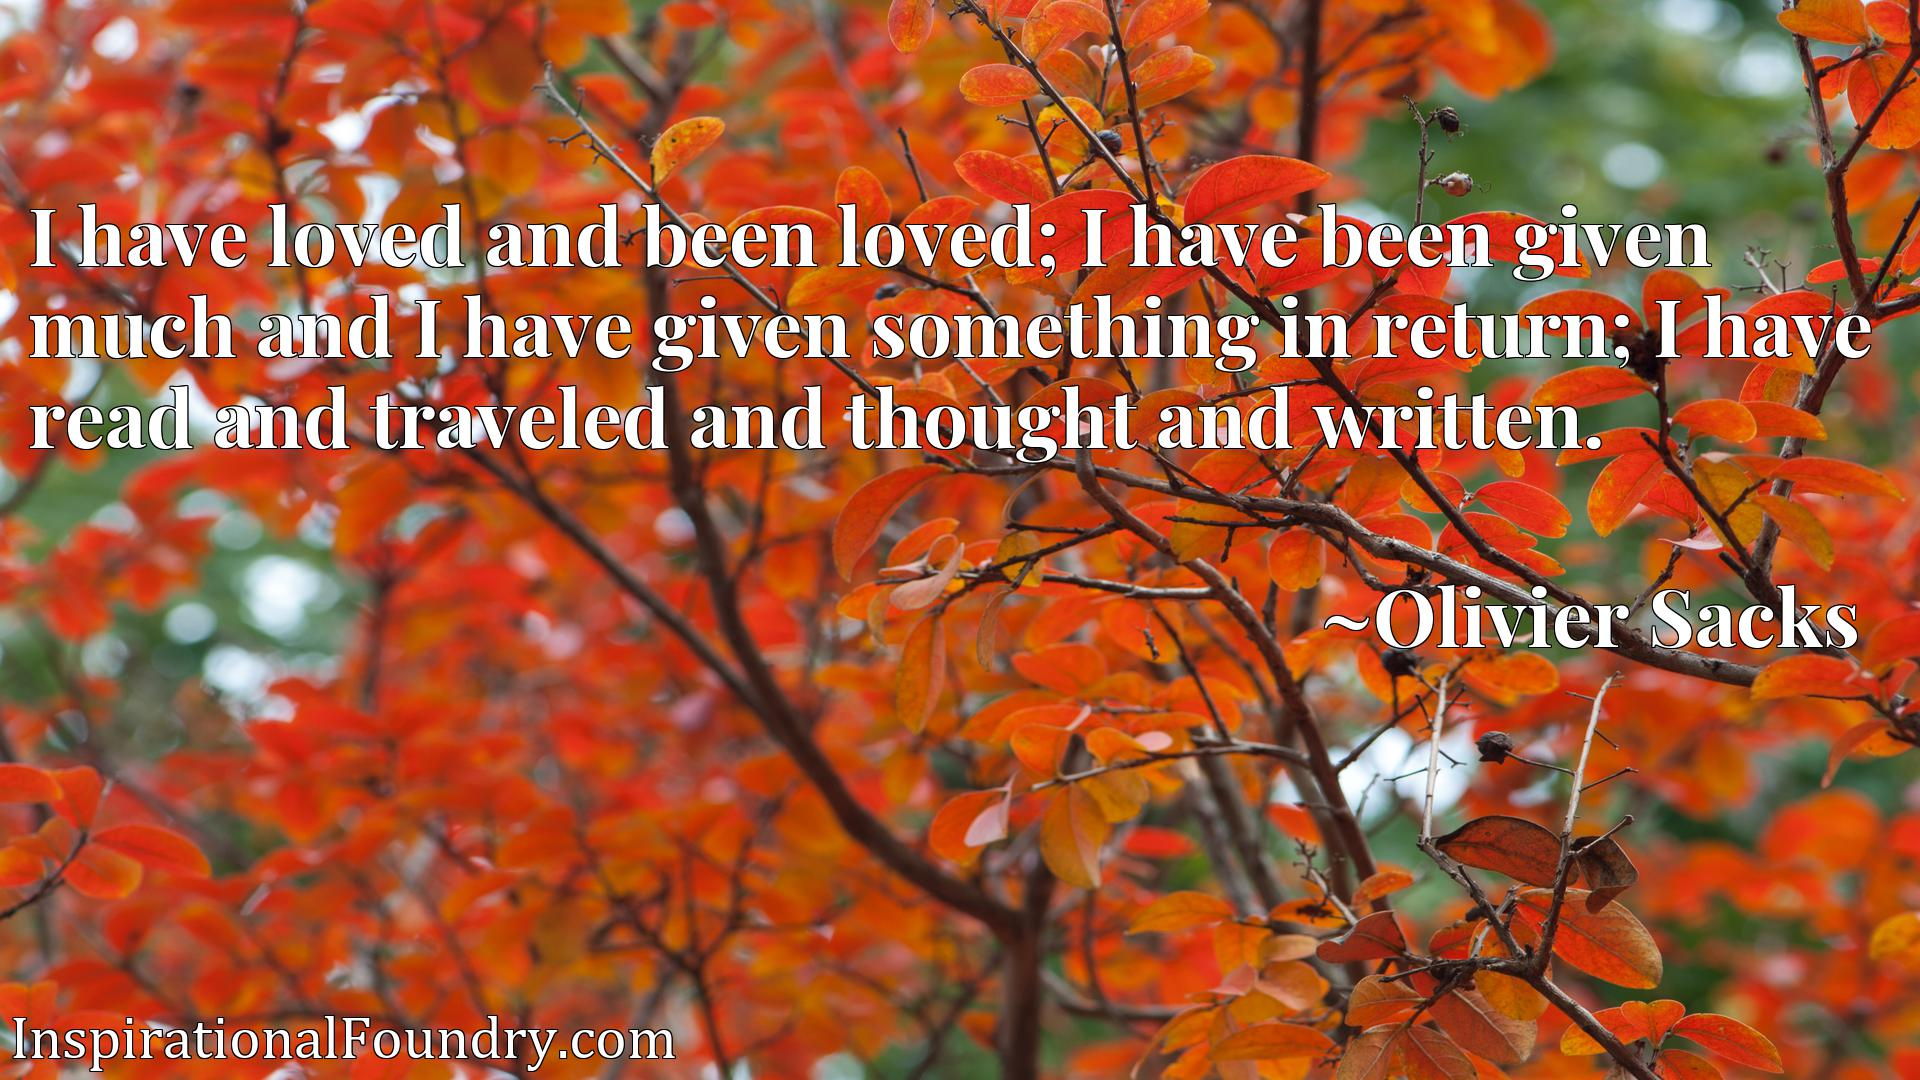 I have loved and been loved; I have been given much and I have given something in return; I have read and traveled and thought and written.